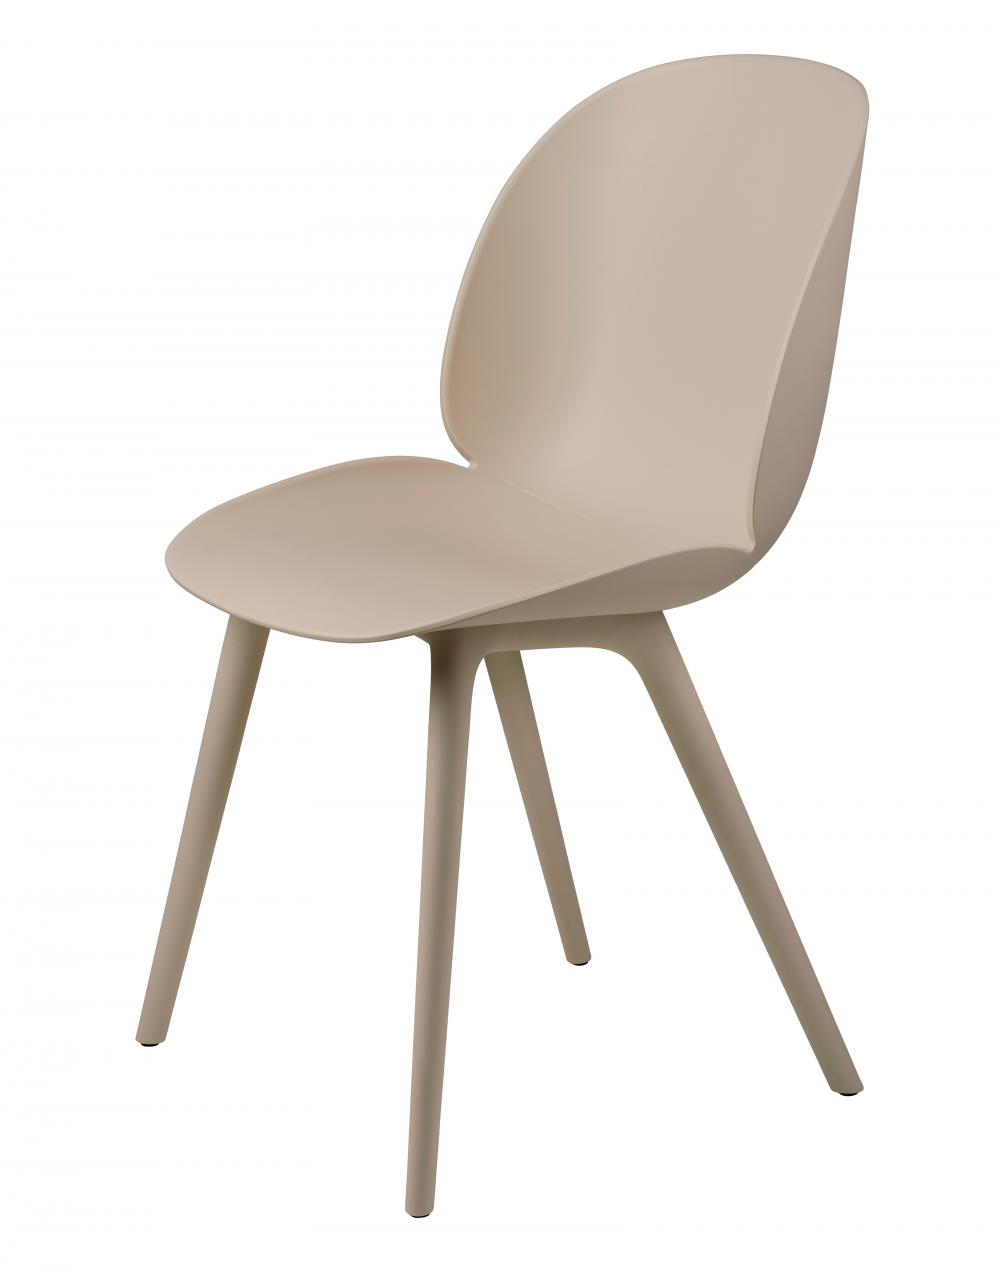 Beetle outdoor dining chair by Gubi